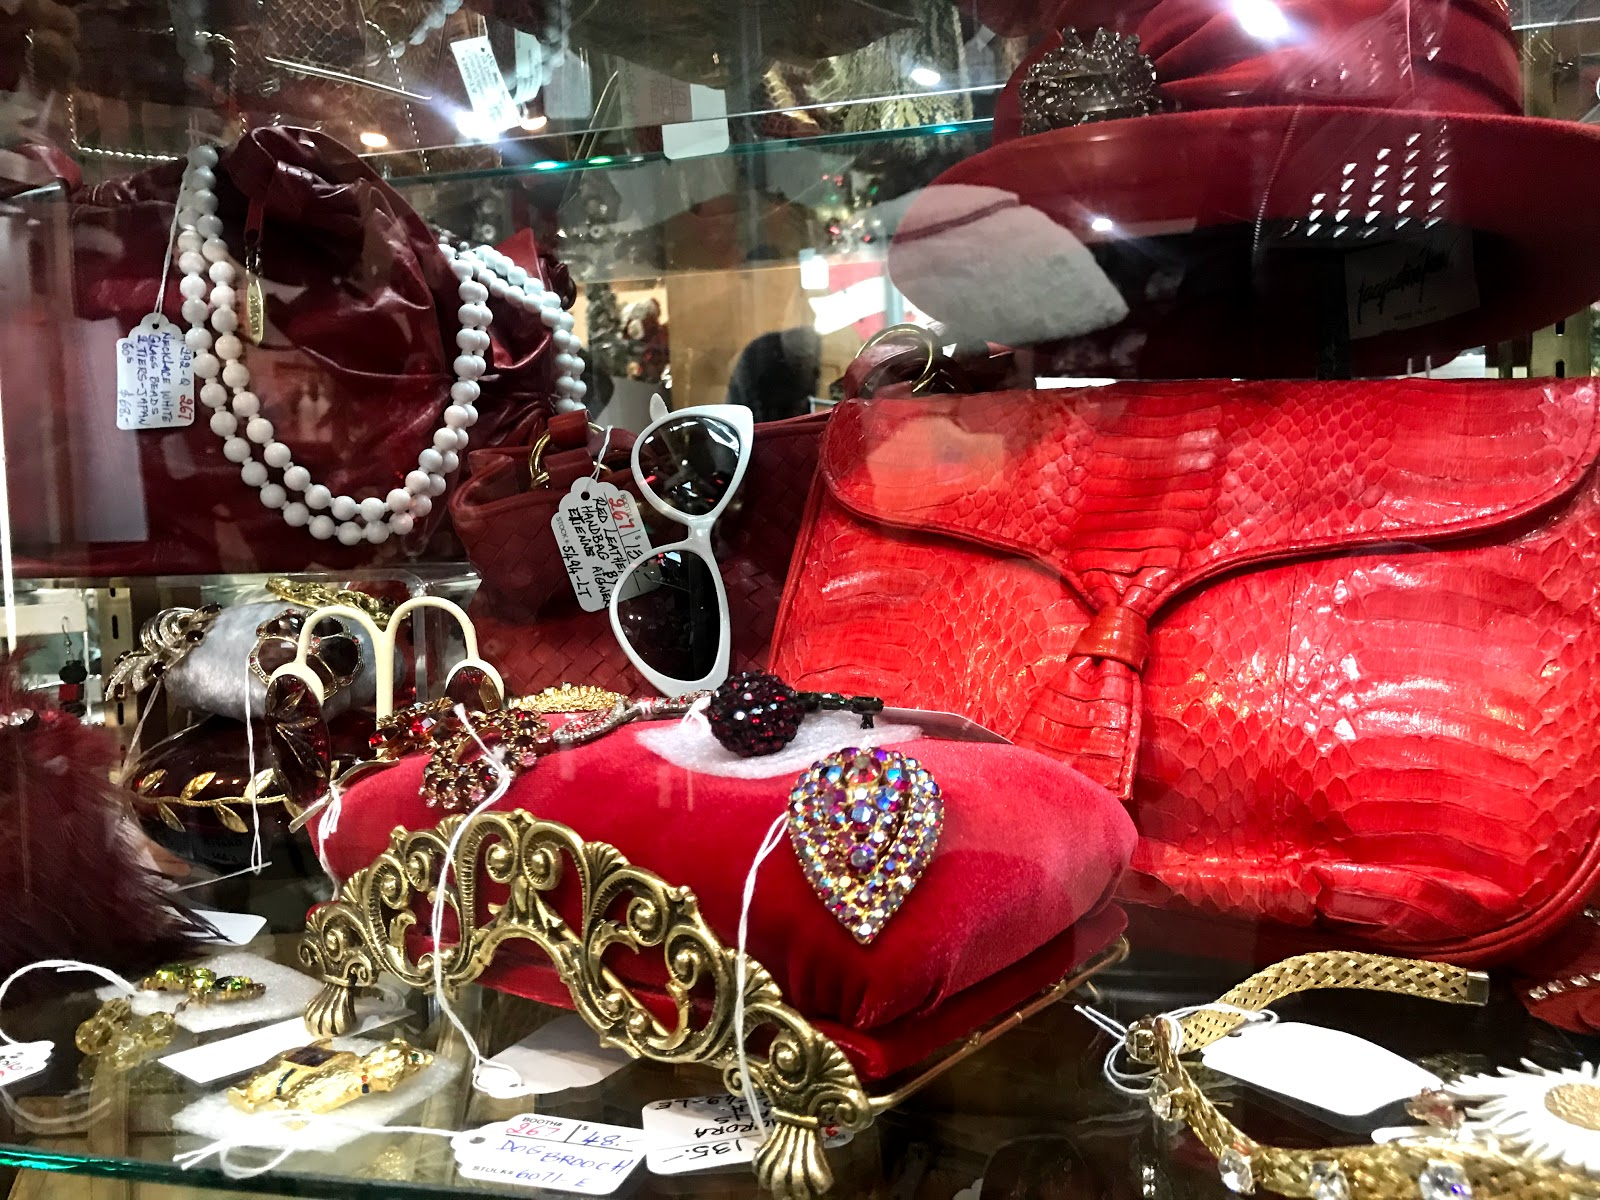 handbags and jewelry at the thrift and secondhand shop